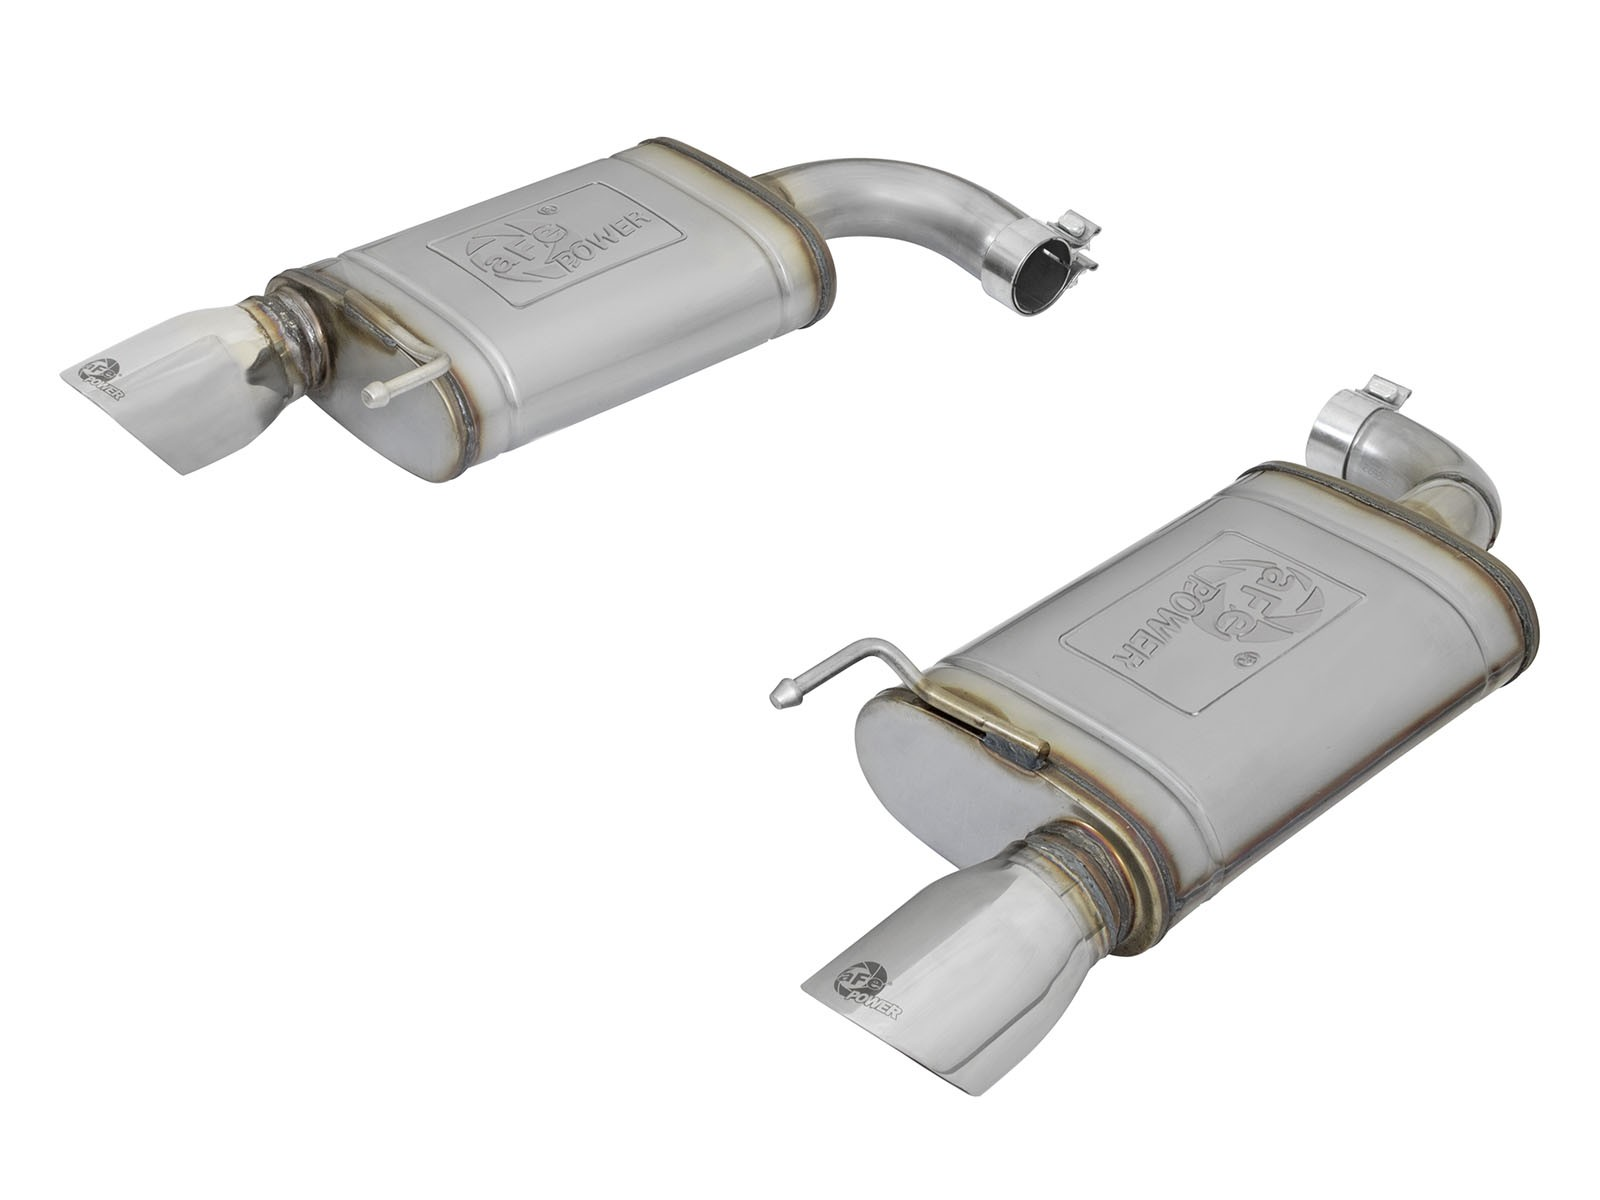 aFe MACHForce XP 2.5in 409 Stainless Axle Back Exhaust w/Stainless Tips 15-17 Ford Mustang I4-2.3L